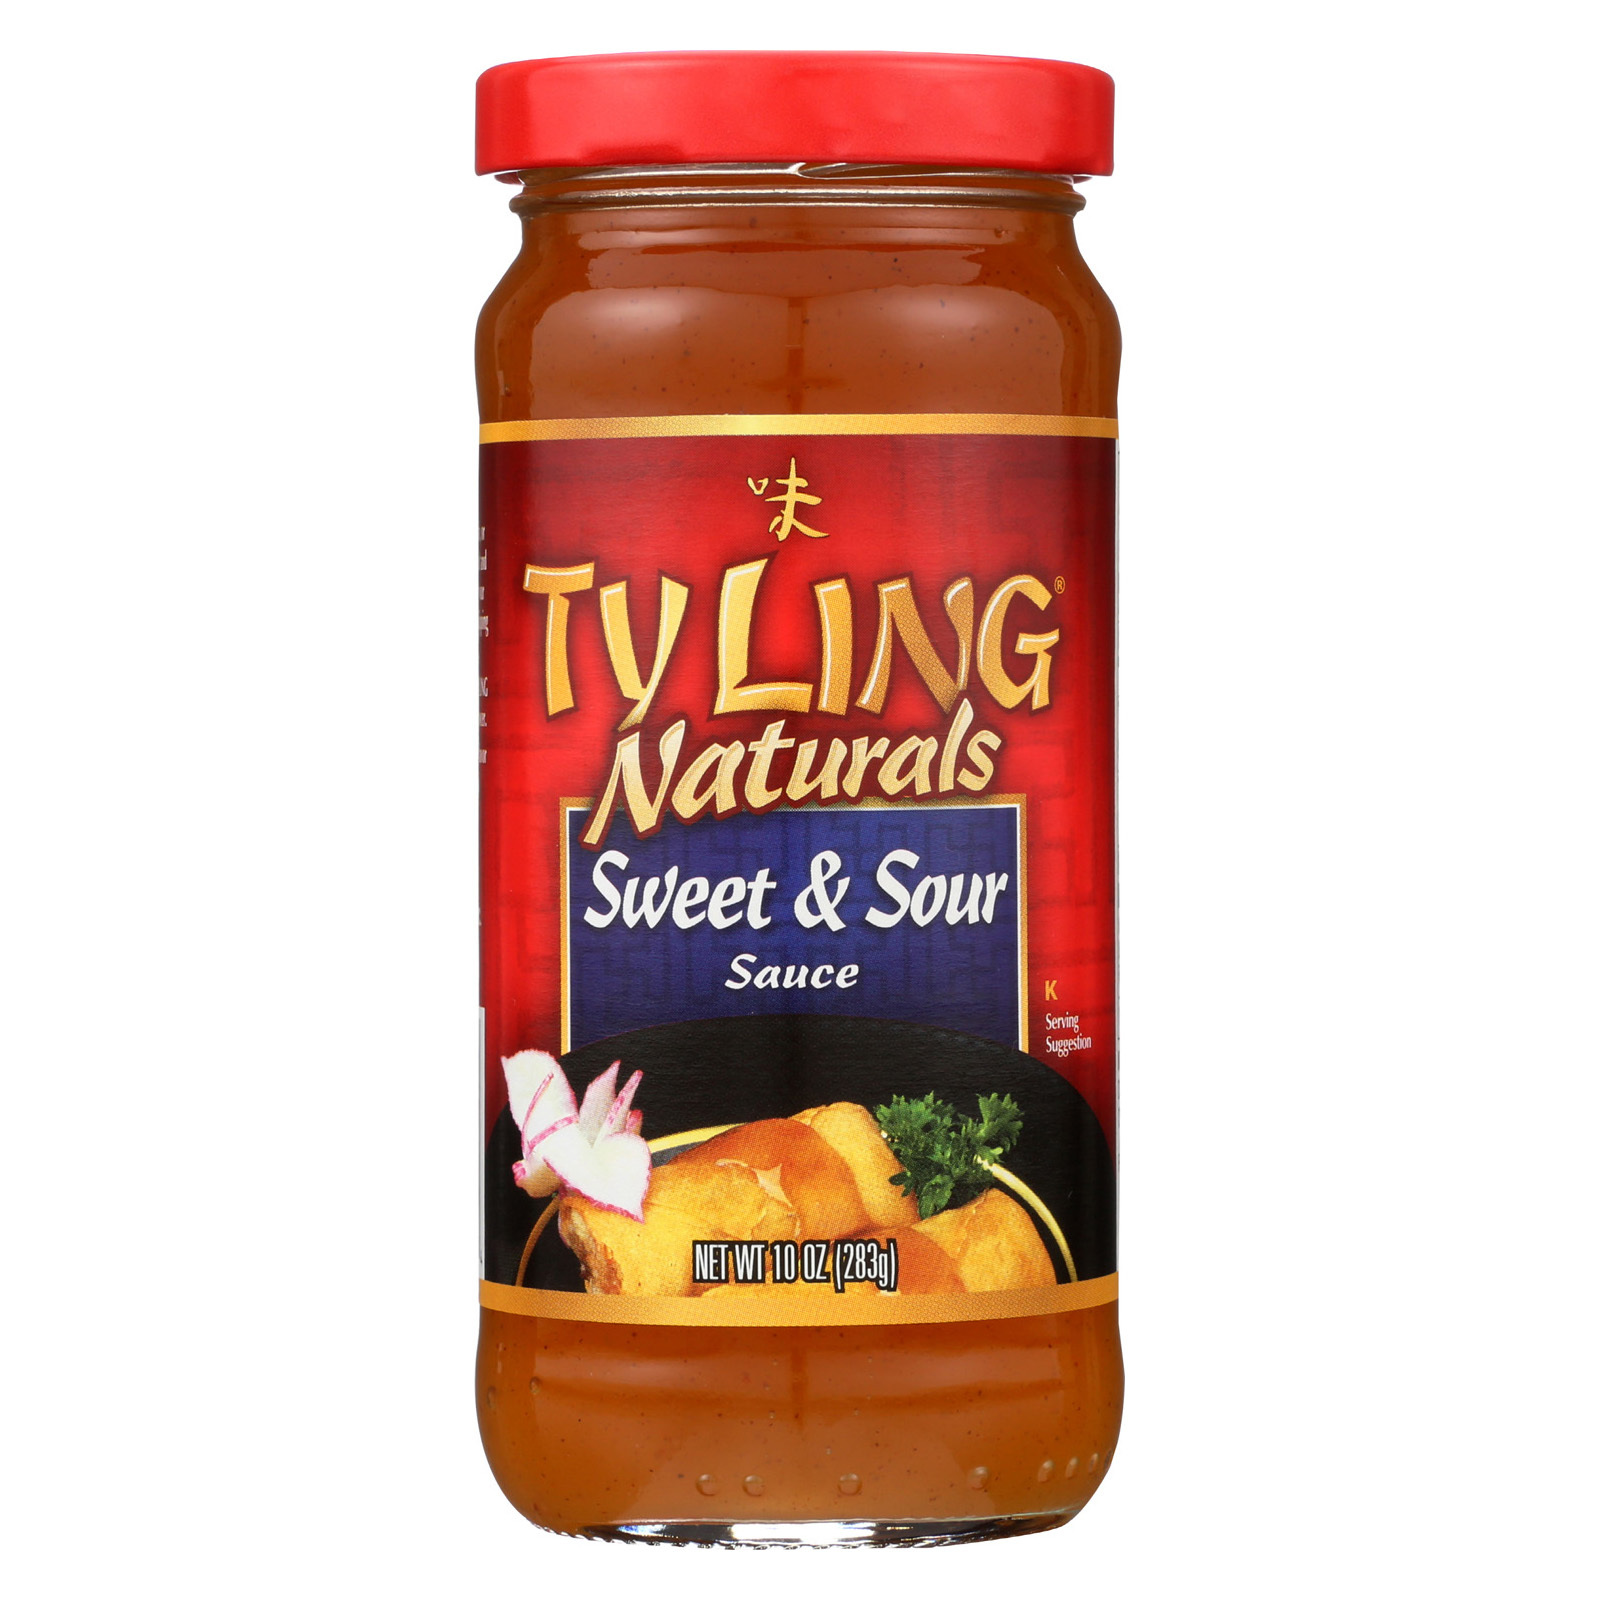 Ty Ling Sauce - Sweetsour - Case of 12 - 10 oz